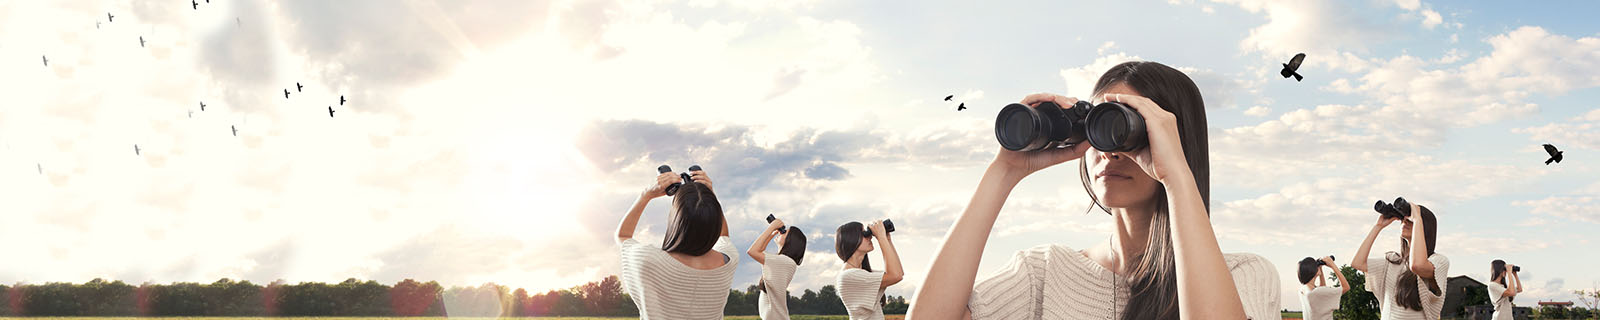 Woman searching sky for a bird - search marketing